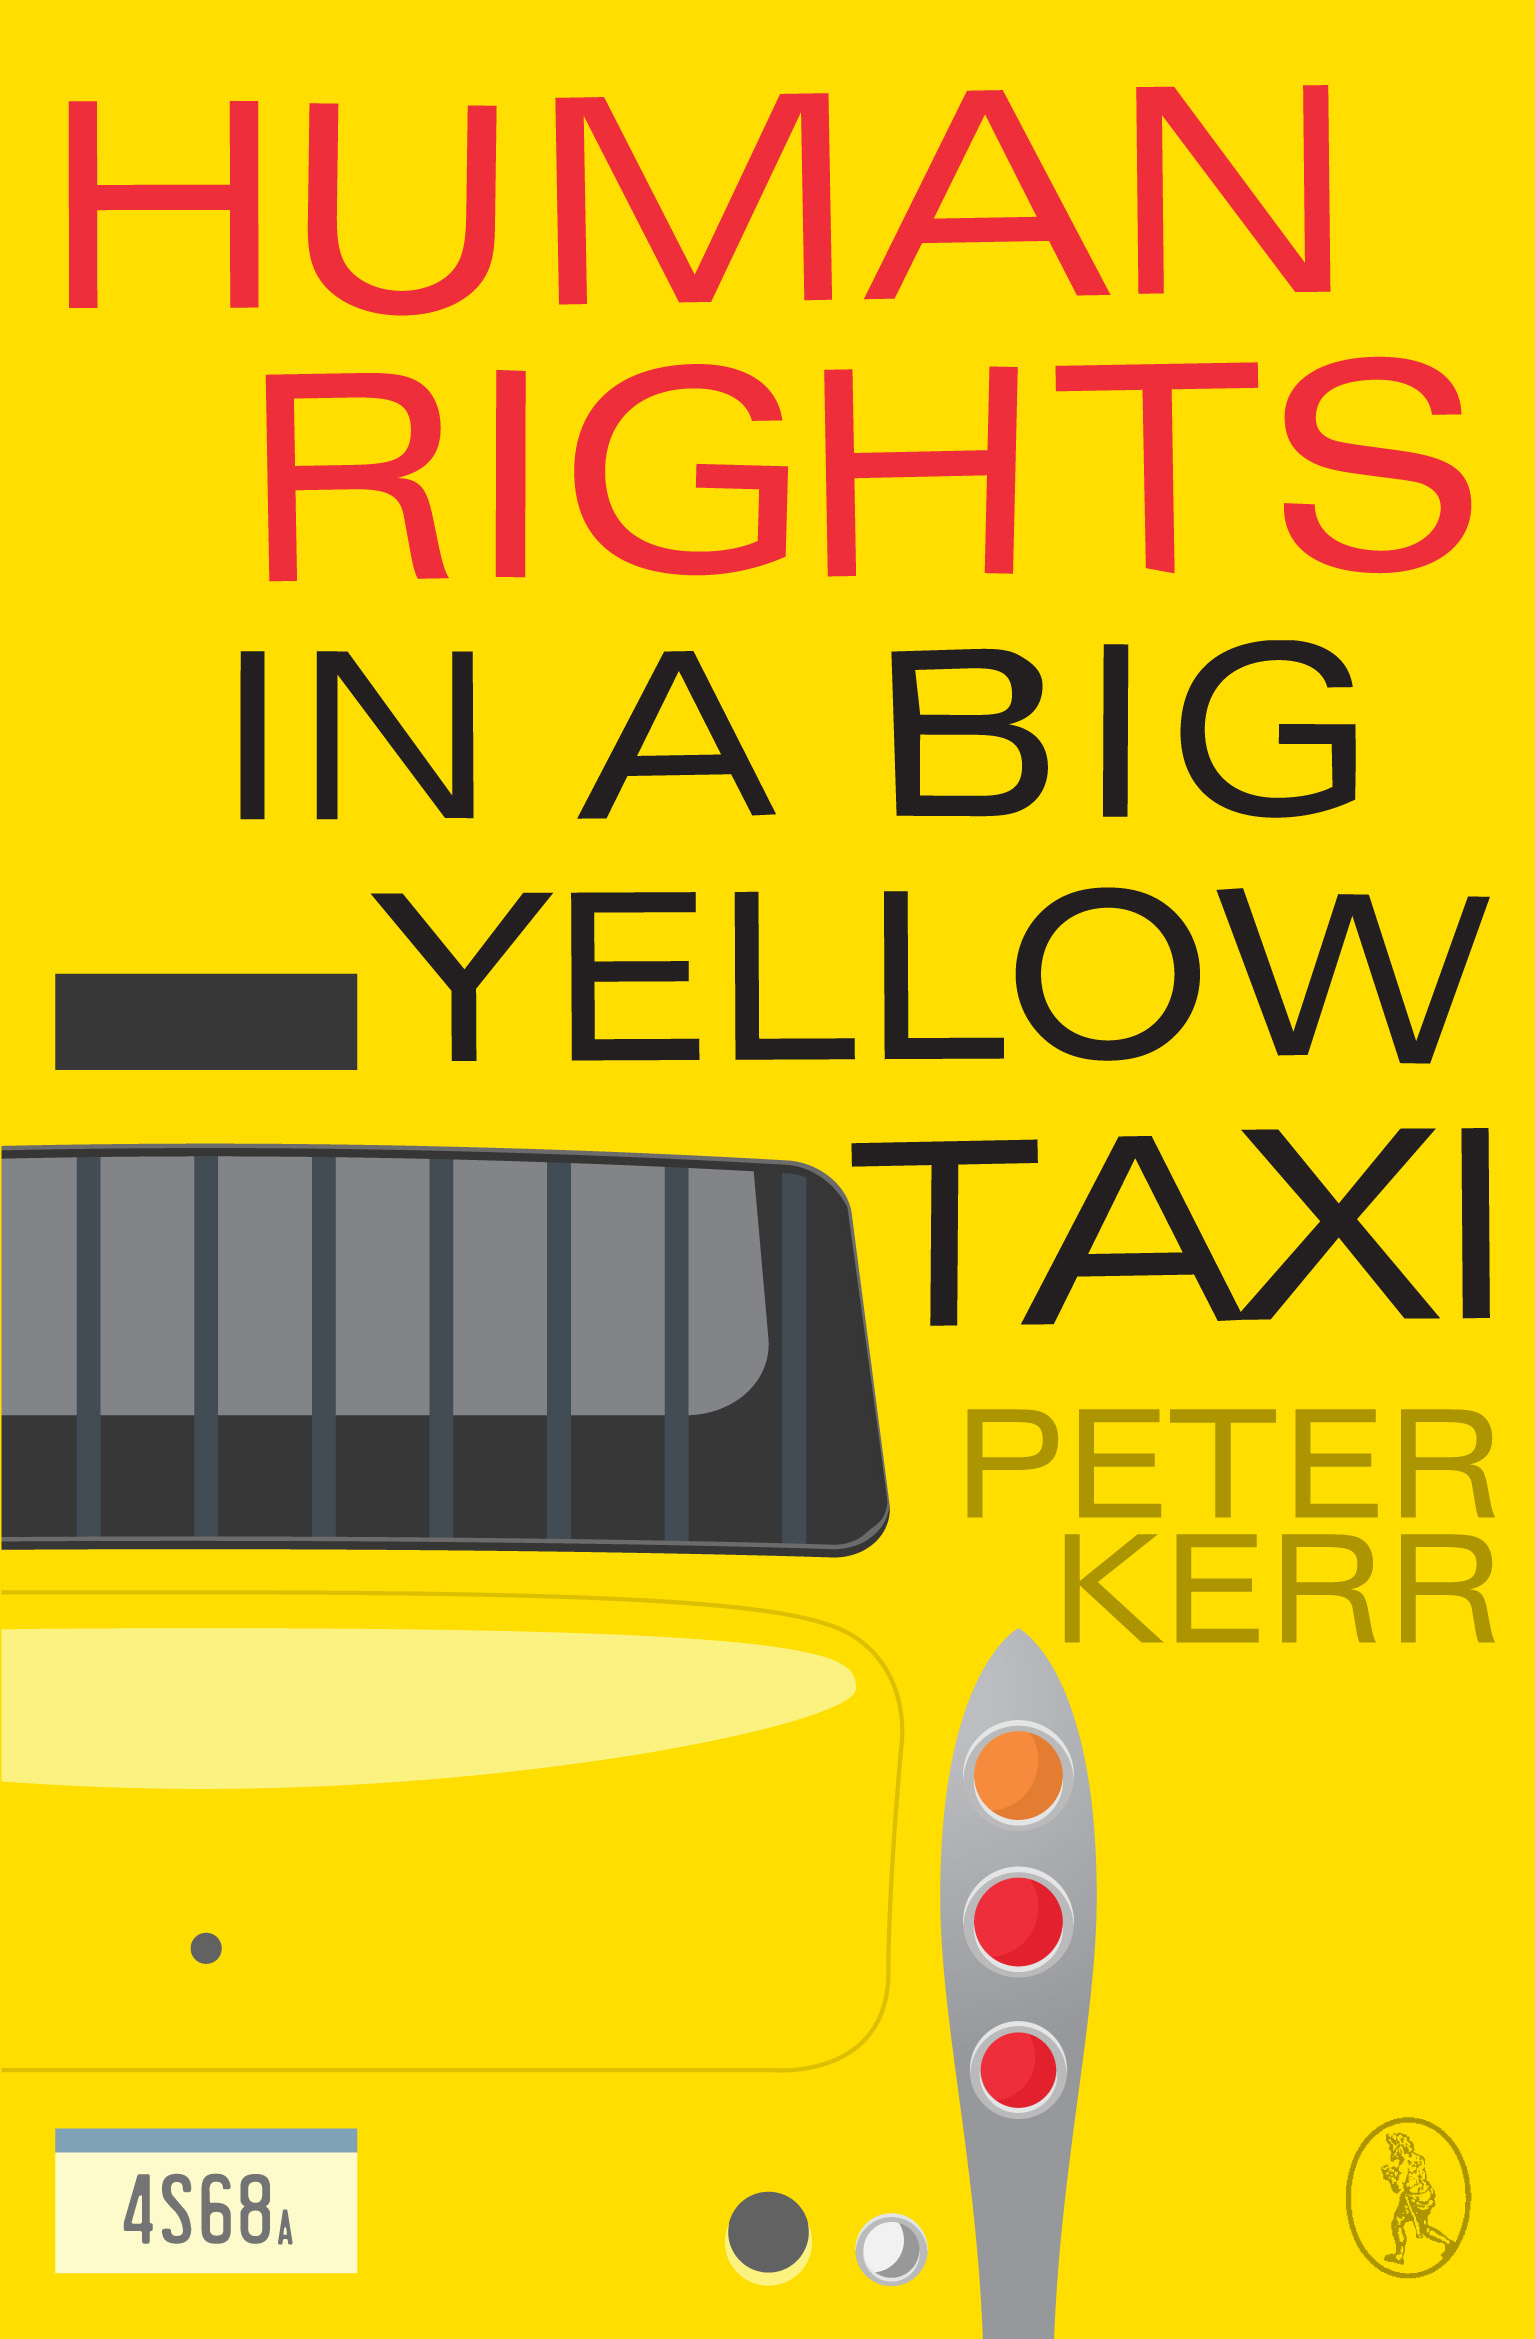 Human Rights in a Big Yellow Taxi